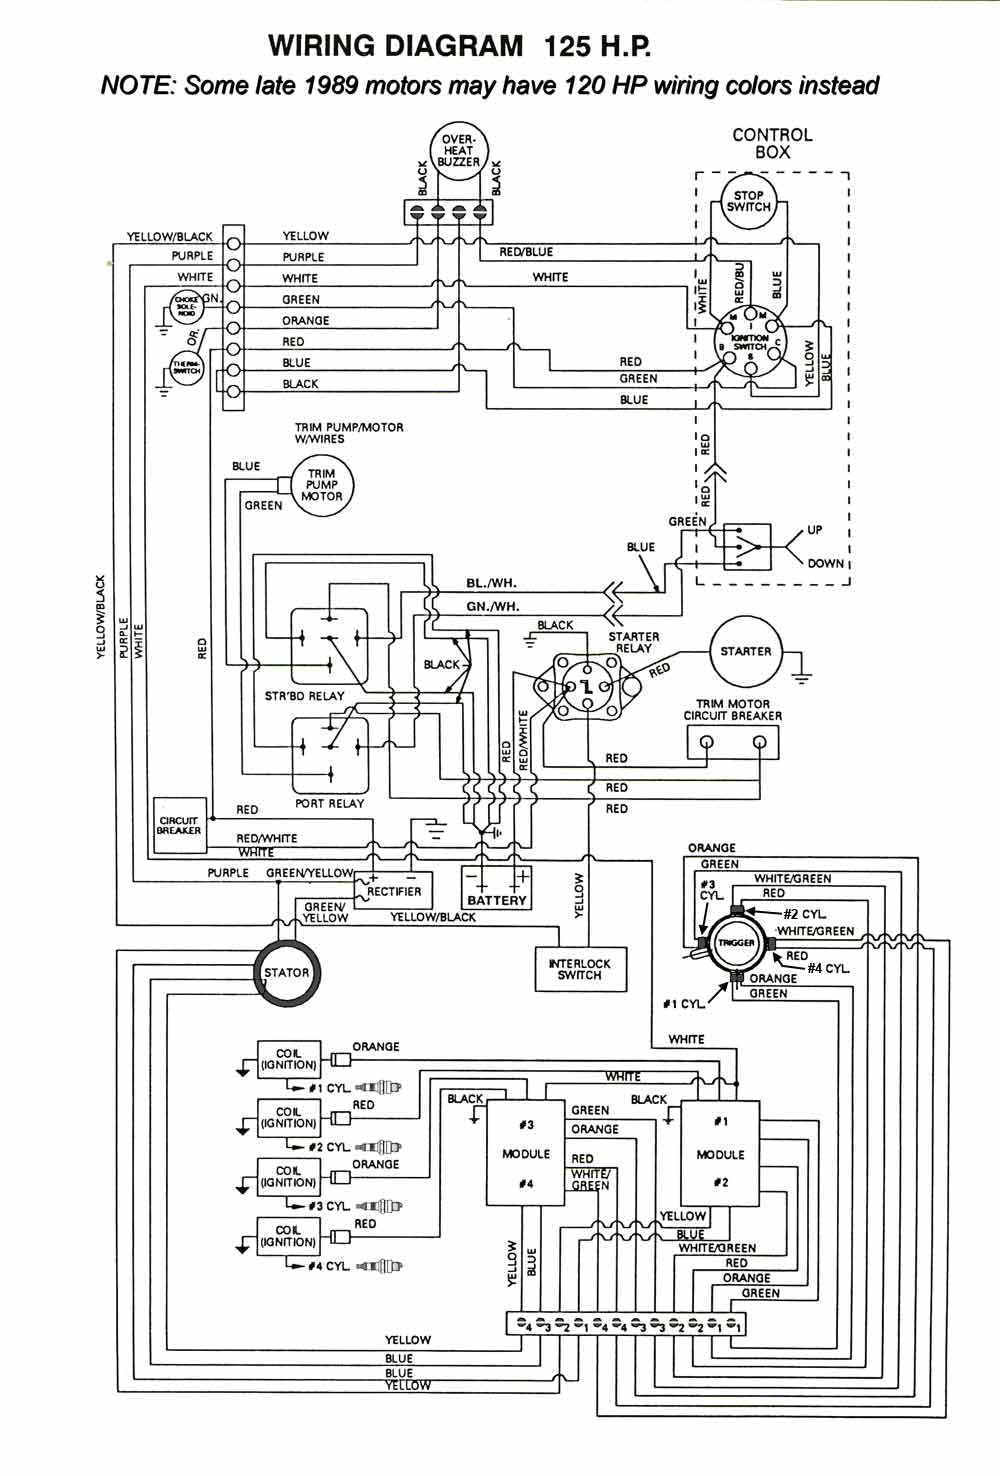 medium resolution of 125 hp wiring diagram wiring diagram blog ignition 4 cyl force wiring mercury marine ignition 4 cyl force wiring